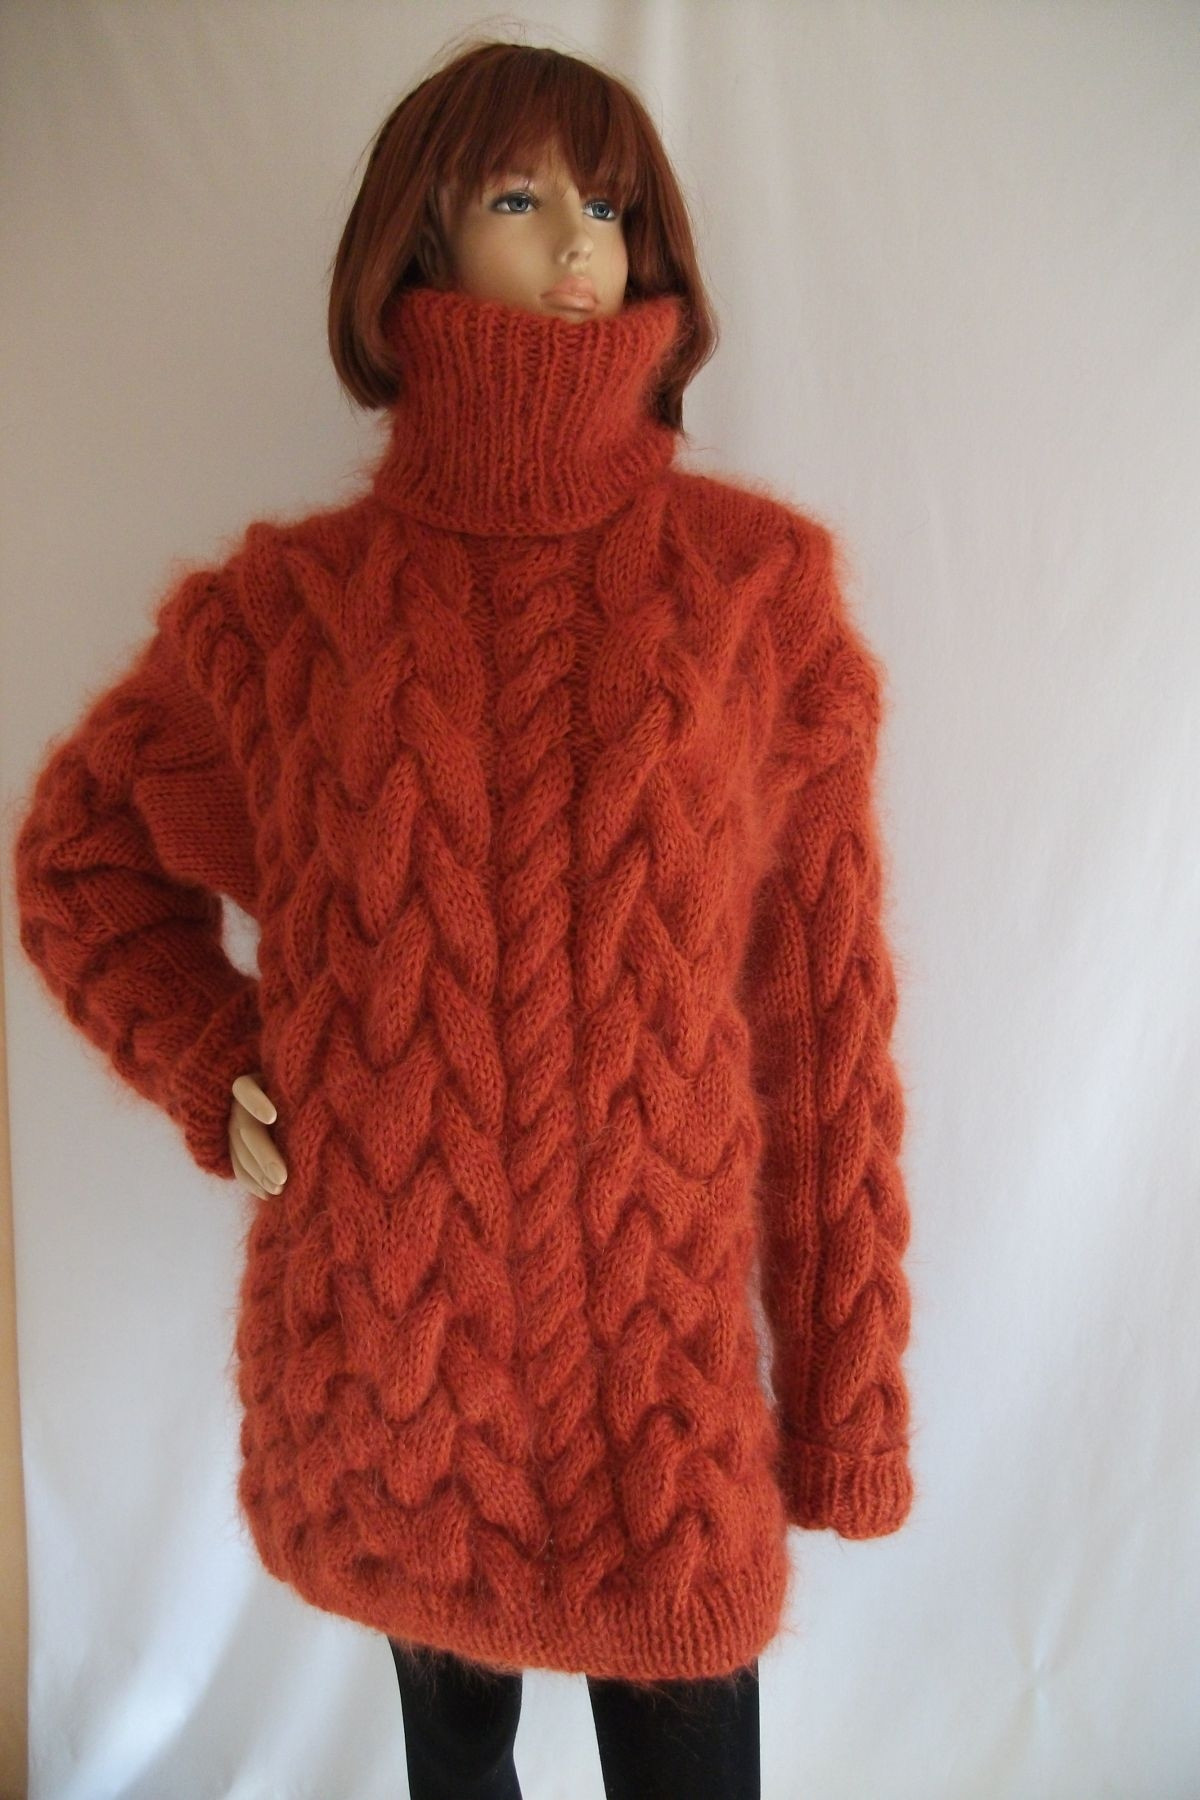 Chunky Cable Knit Sweater Elegant Thick Chunky Cable Knitted Mohair Merino Turtleneck Of Attractive 42 Images Chunky Cable Knit Sweater